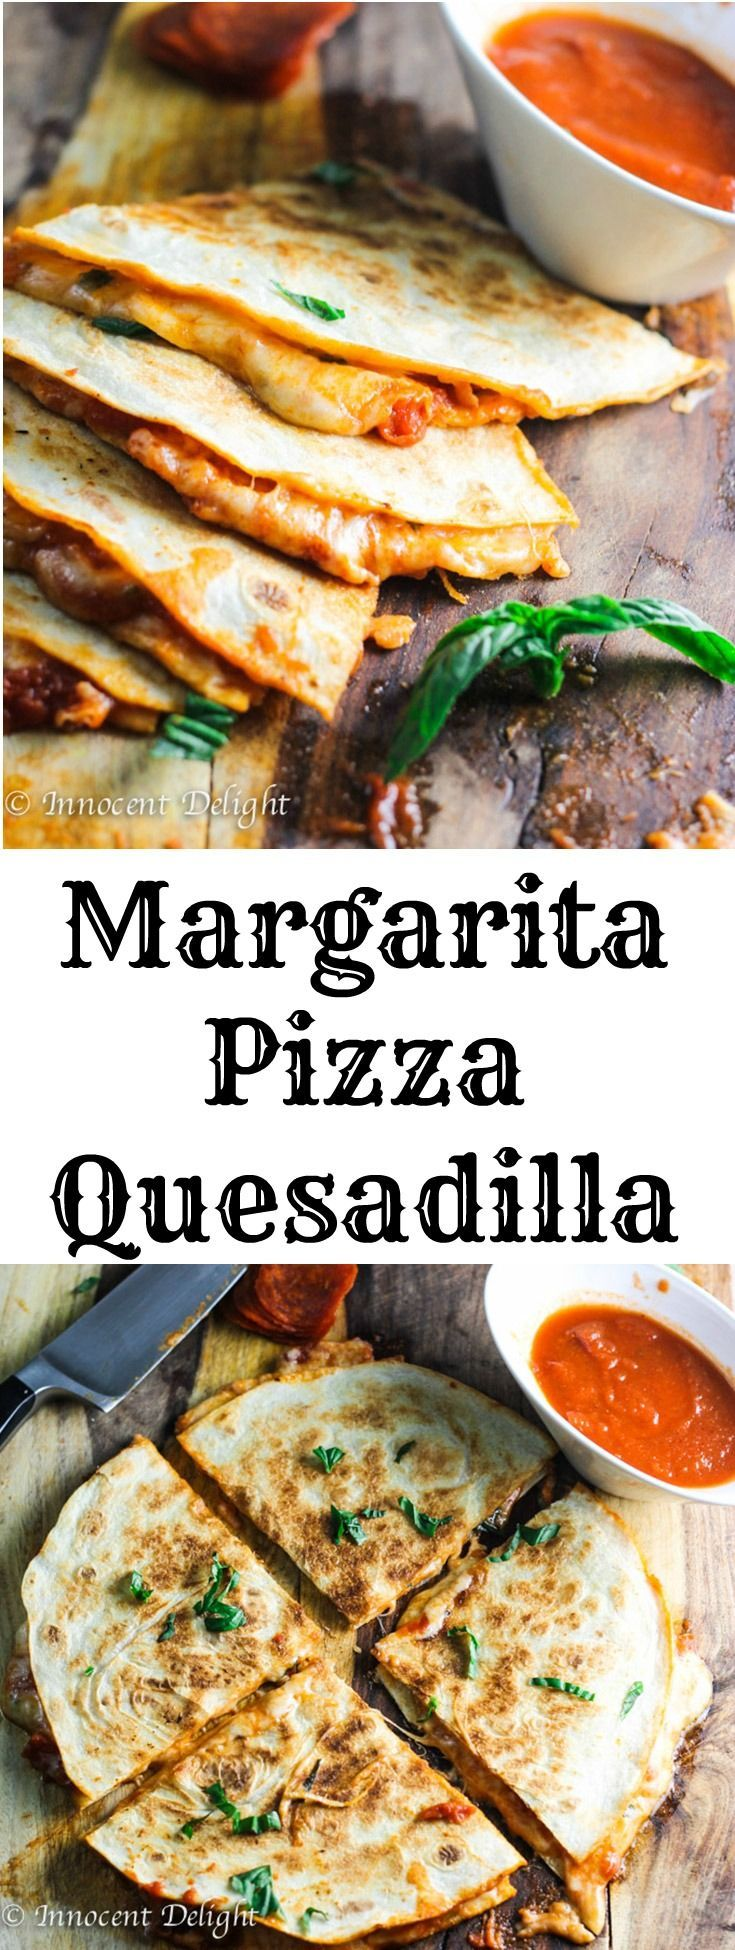 Margarita Pizza Quesadilla combine two of the most popular Italian and Mexican dishes – pizza and quesadillas. Listen, if 1 is good…2 is better!